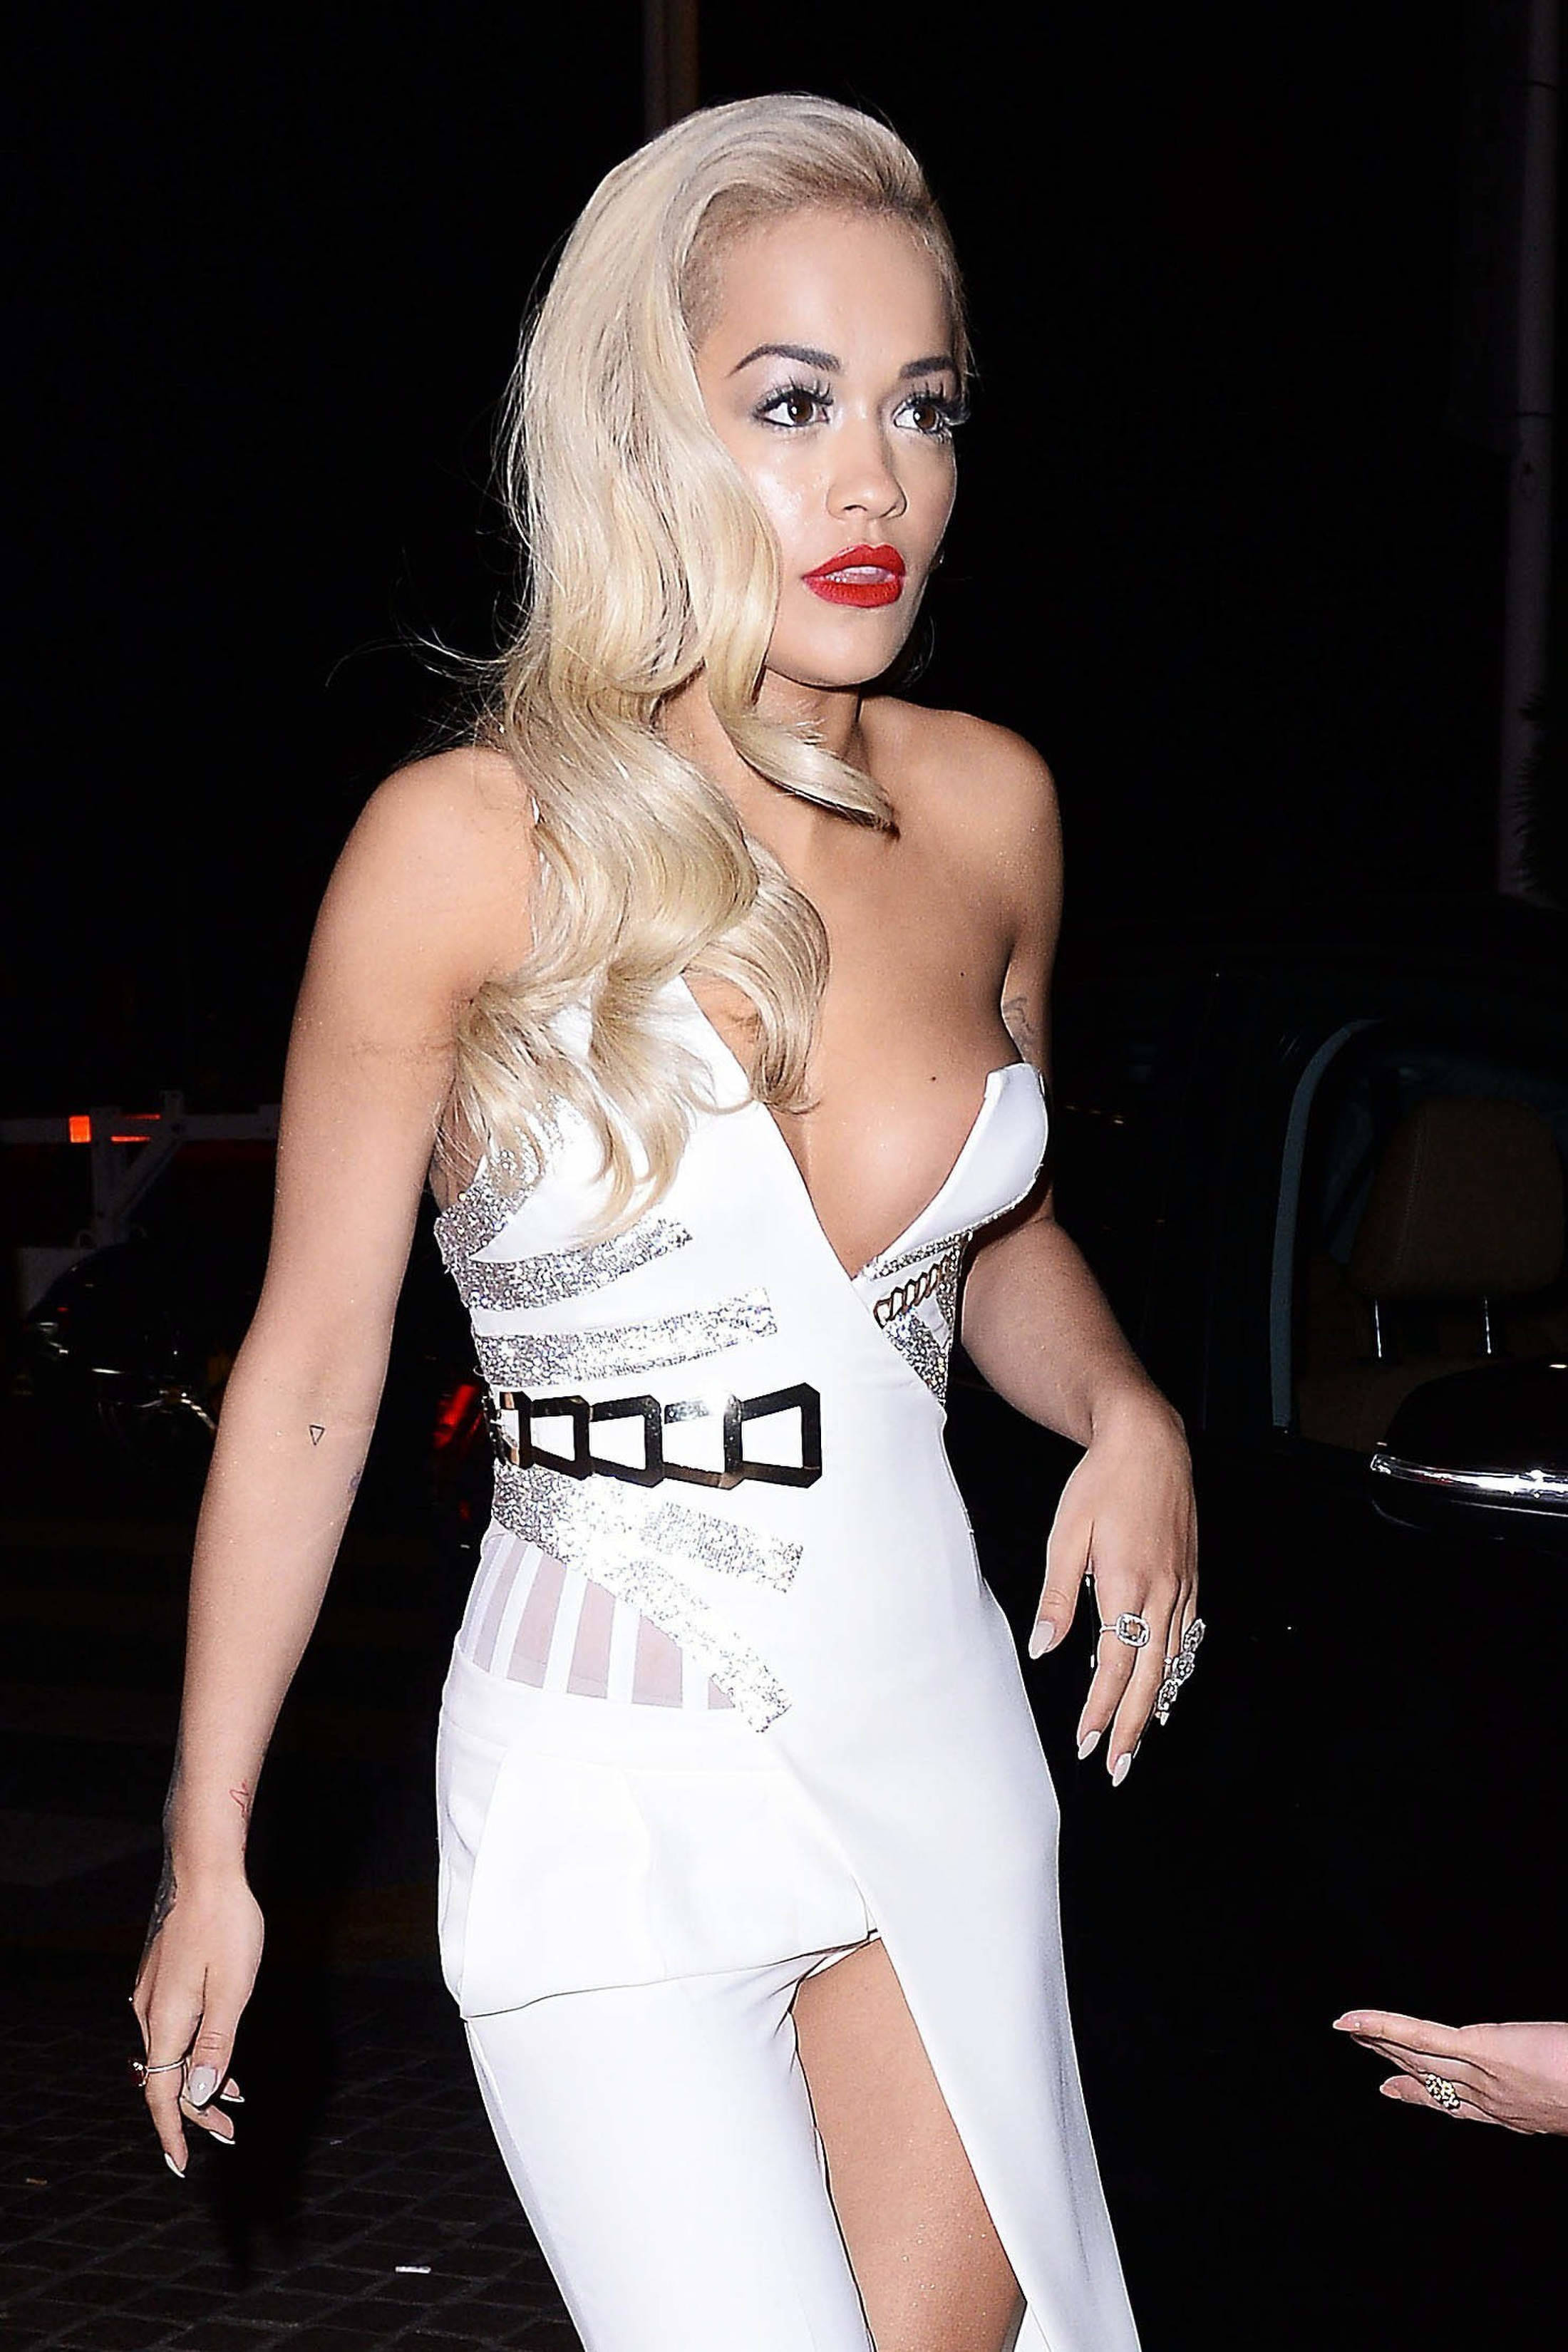 Rita Ora The Singer >> Rita Ora Heads To Her Private Concert In Cannes | 195043 | Photos | The Blemish